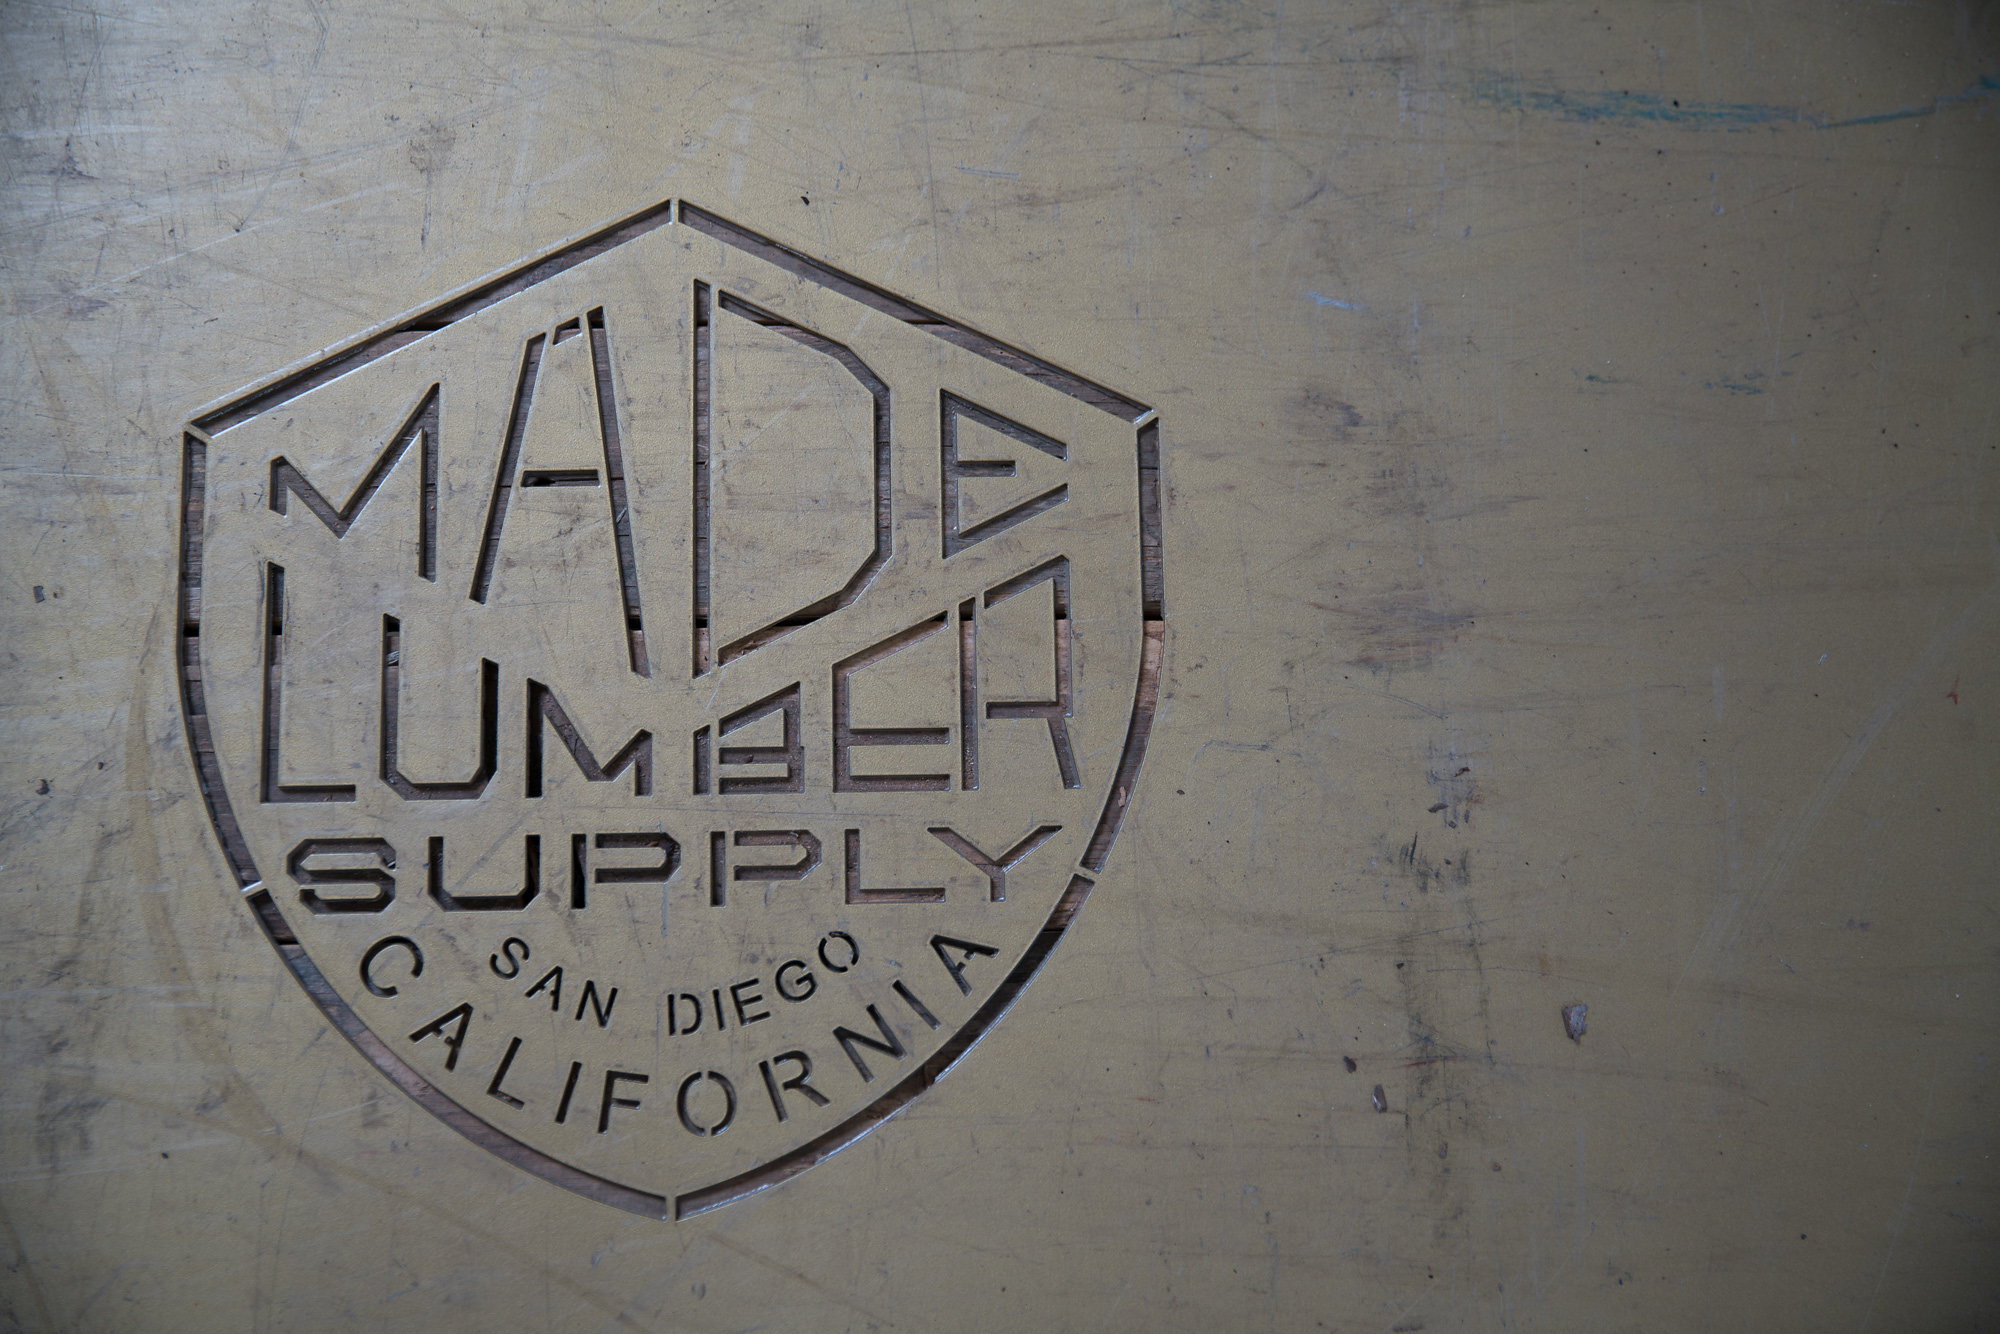 made lumber supply san diego california logo stencil